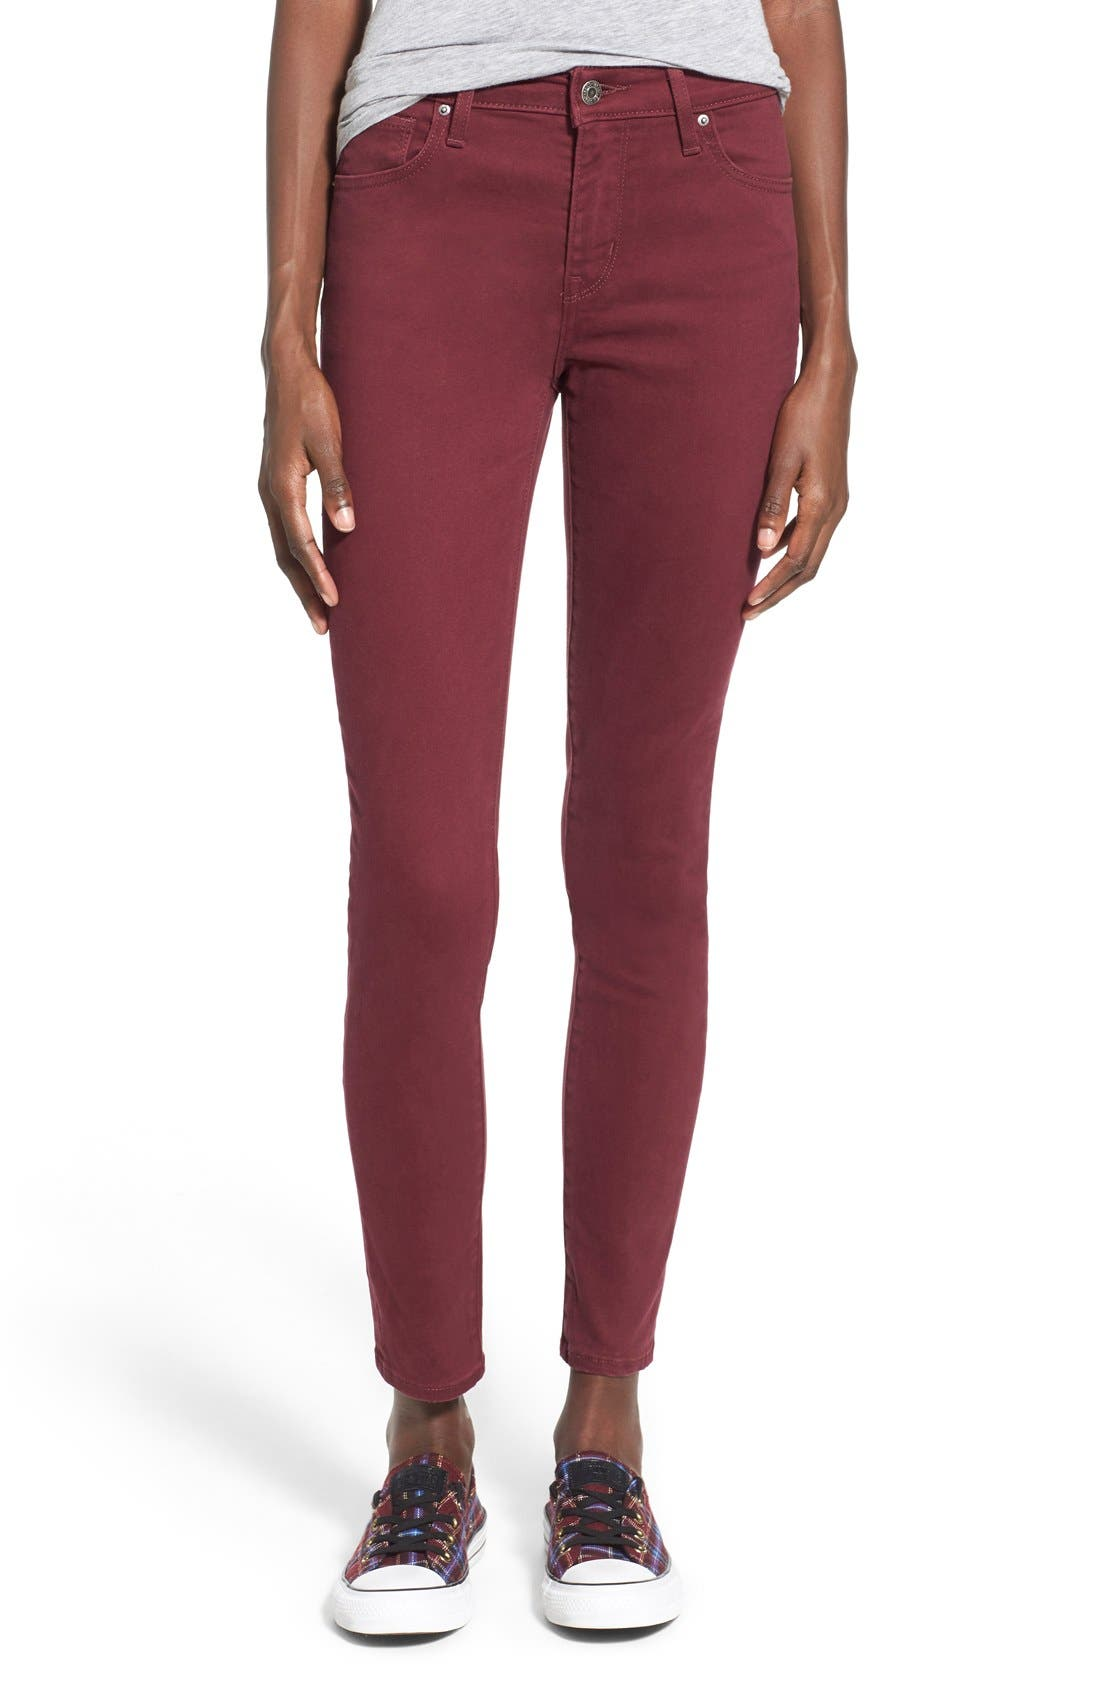 Alternate Image 1 Selected - Levi's® '721' High Rise Skinny Jeans (Warm Merlot)